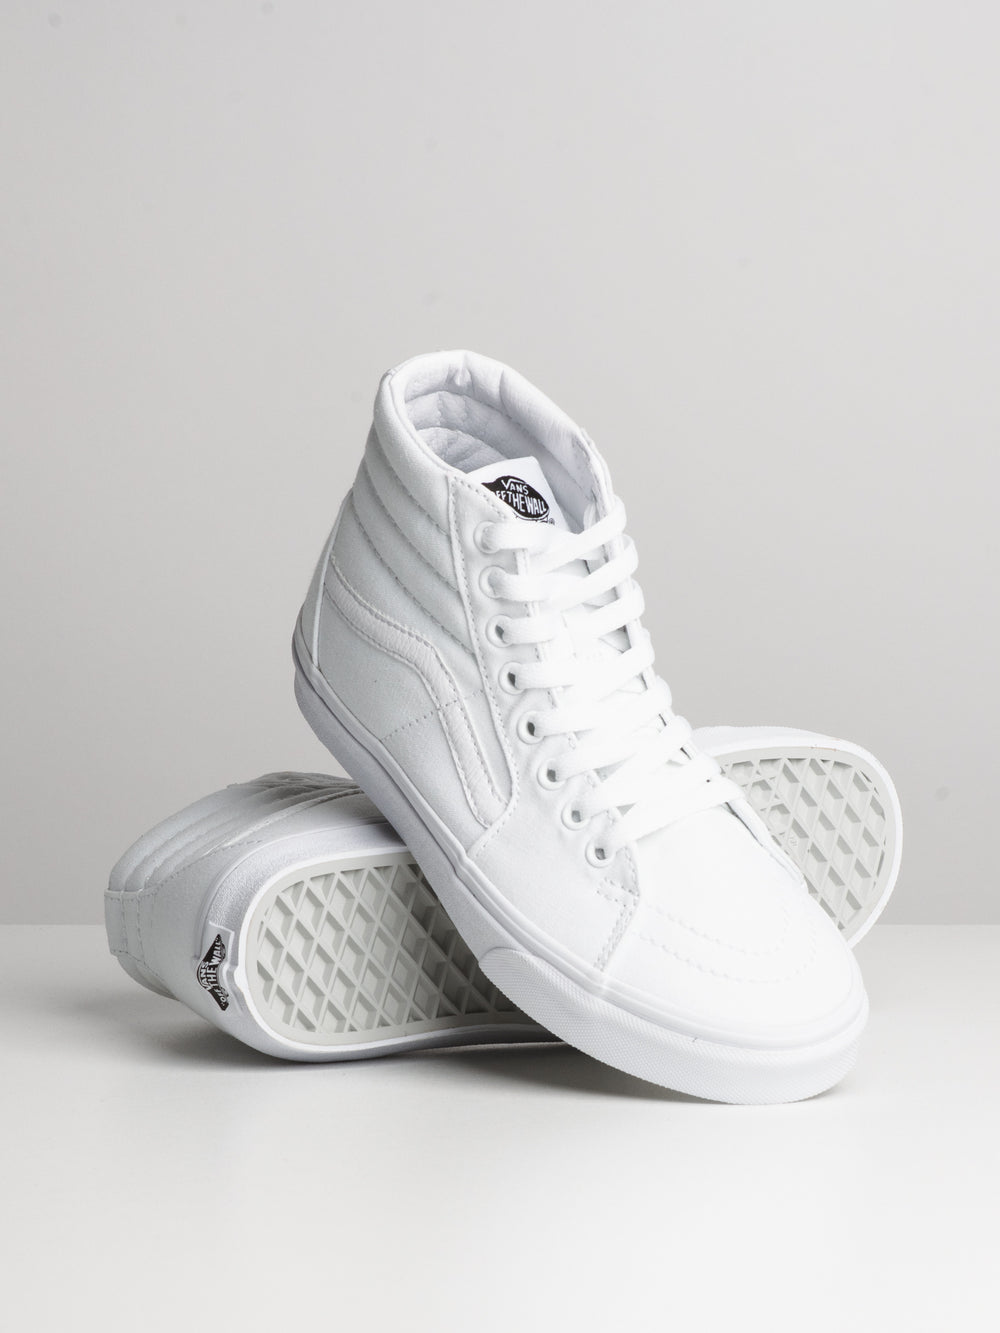 WOMENS SK8 HI - TRUE WHITE